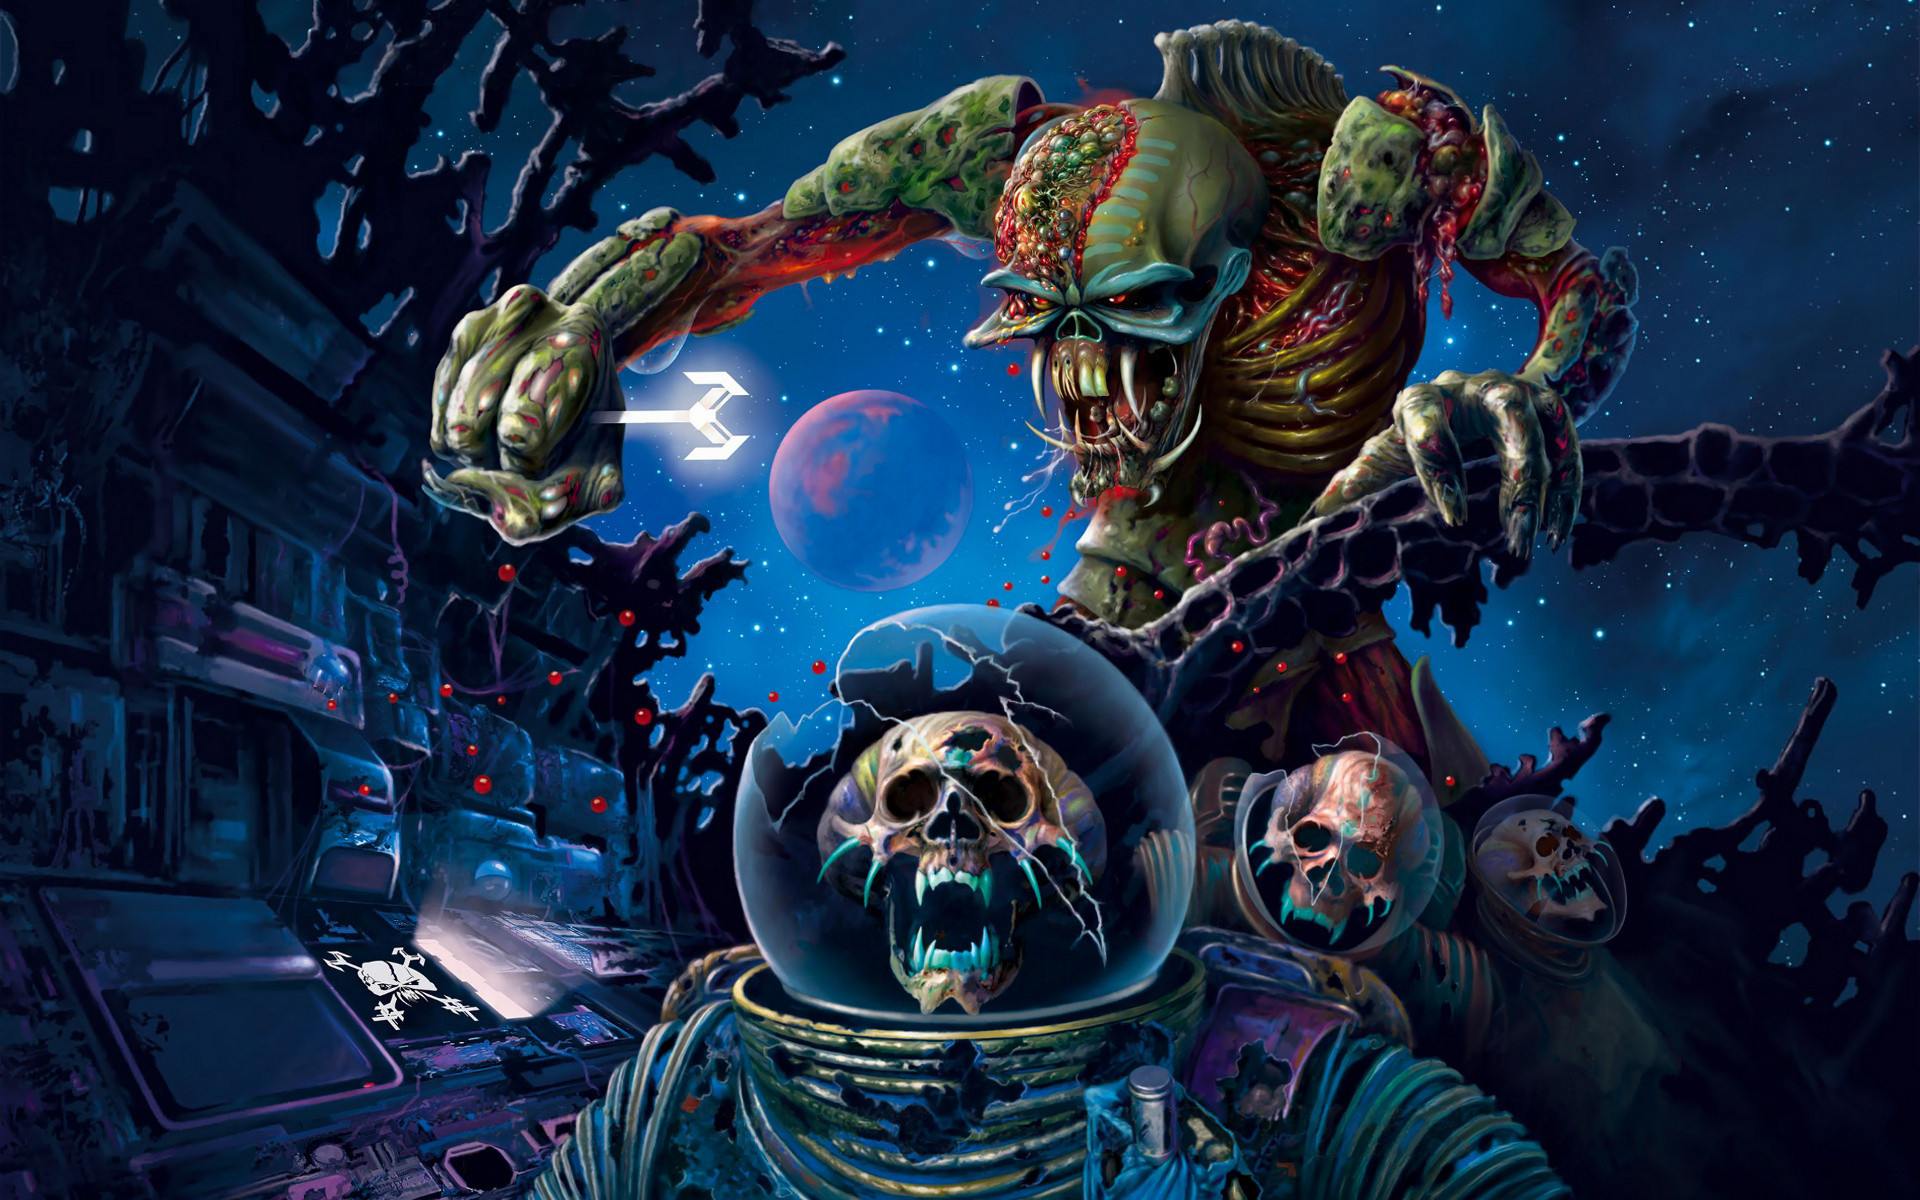 1920x1200 Iron maiden bands groups entertainment hard rock heavy metal eddie album  covers art skulls dark wallpaper |  | 25080 | WallpaperUP